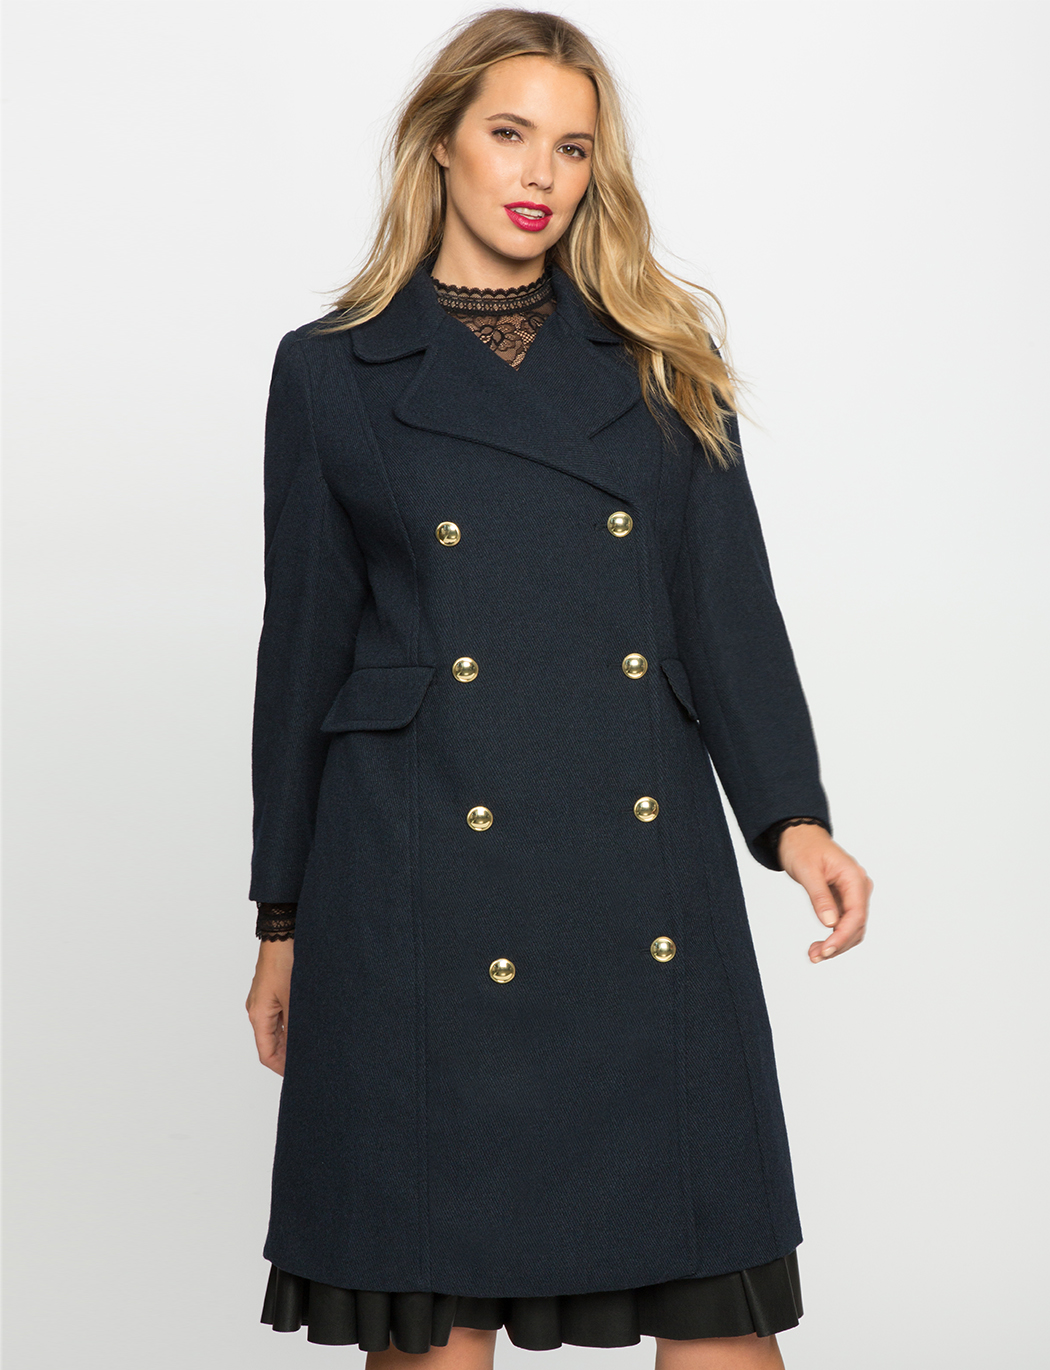 7e41f66f035 Double Breasted Coat